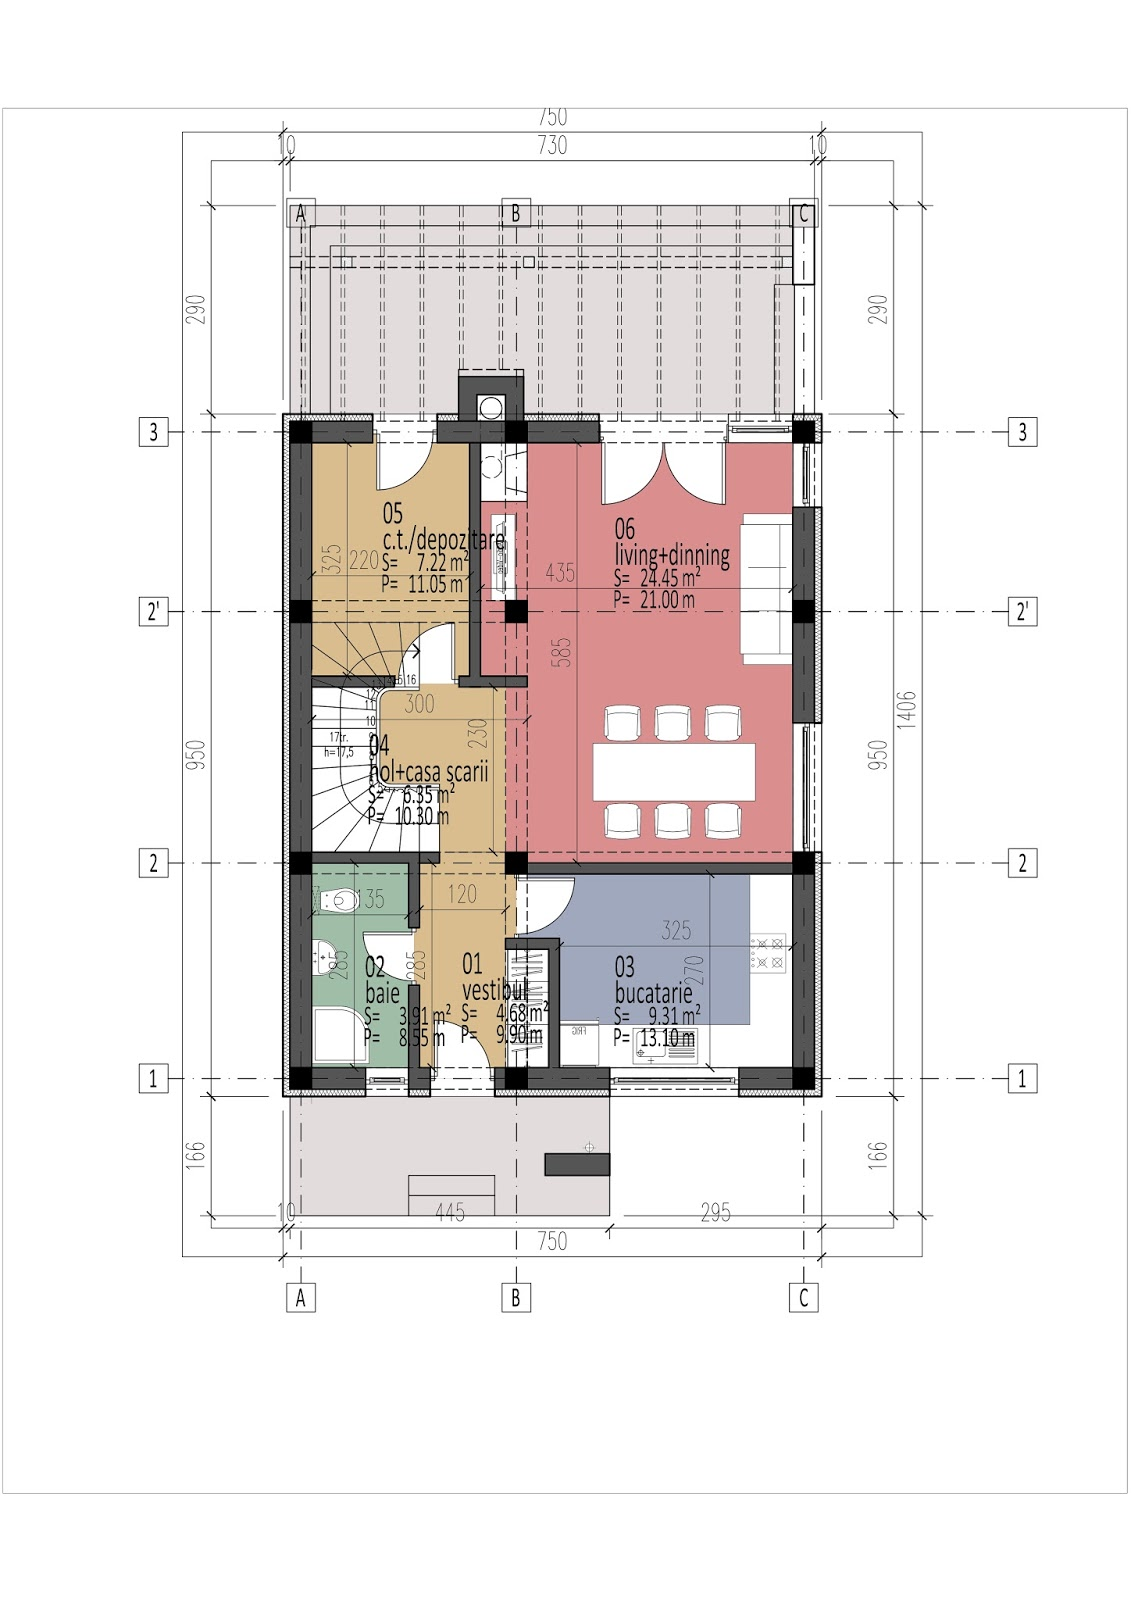 Two-story house plans are more inexpensive than one-story homes. It is more systematic to construct and live in a two-story layout. Whatever your reason for choosing a two-story home, we know there's a design that has everything you want. Here are some free floor plans and layout for you.